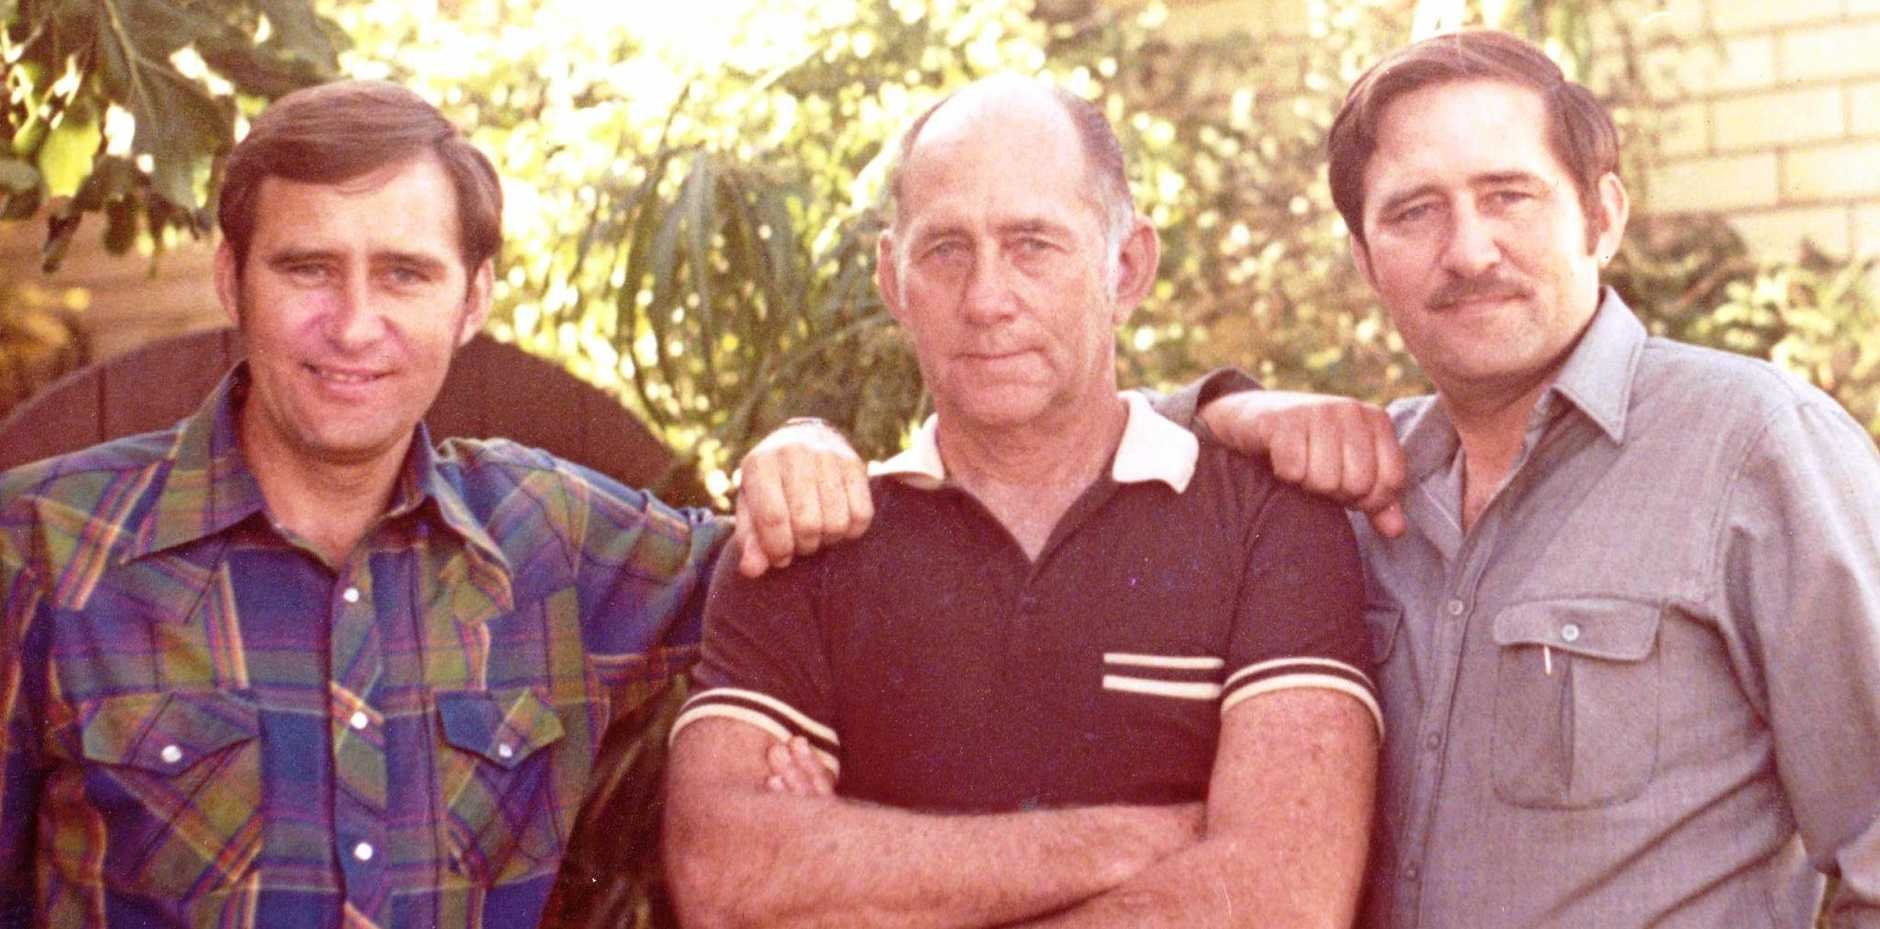 TWIN BROTHERS: Barry (left) and George (right) Hatchman with their dad Jack. Barry and George will undergo heart surgery within months of each other.